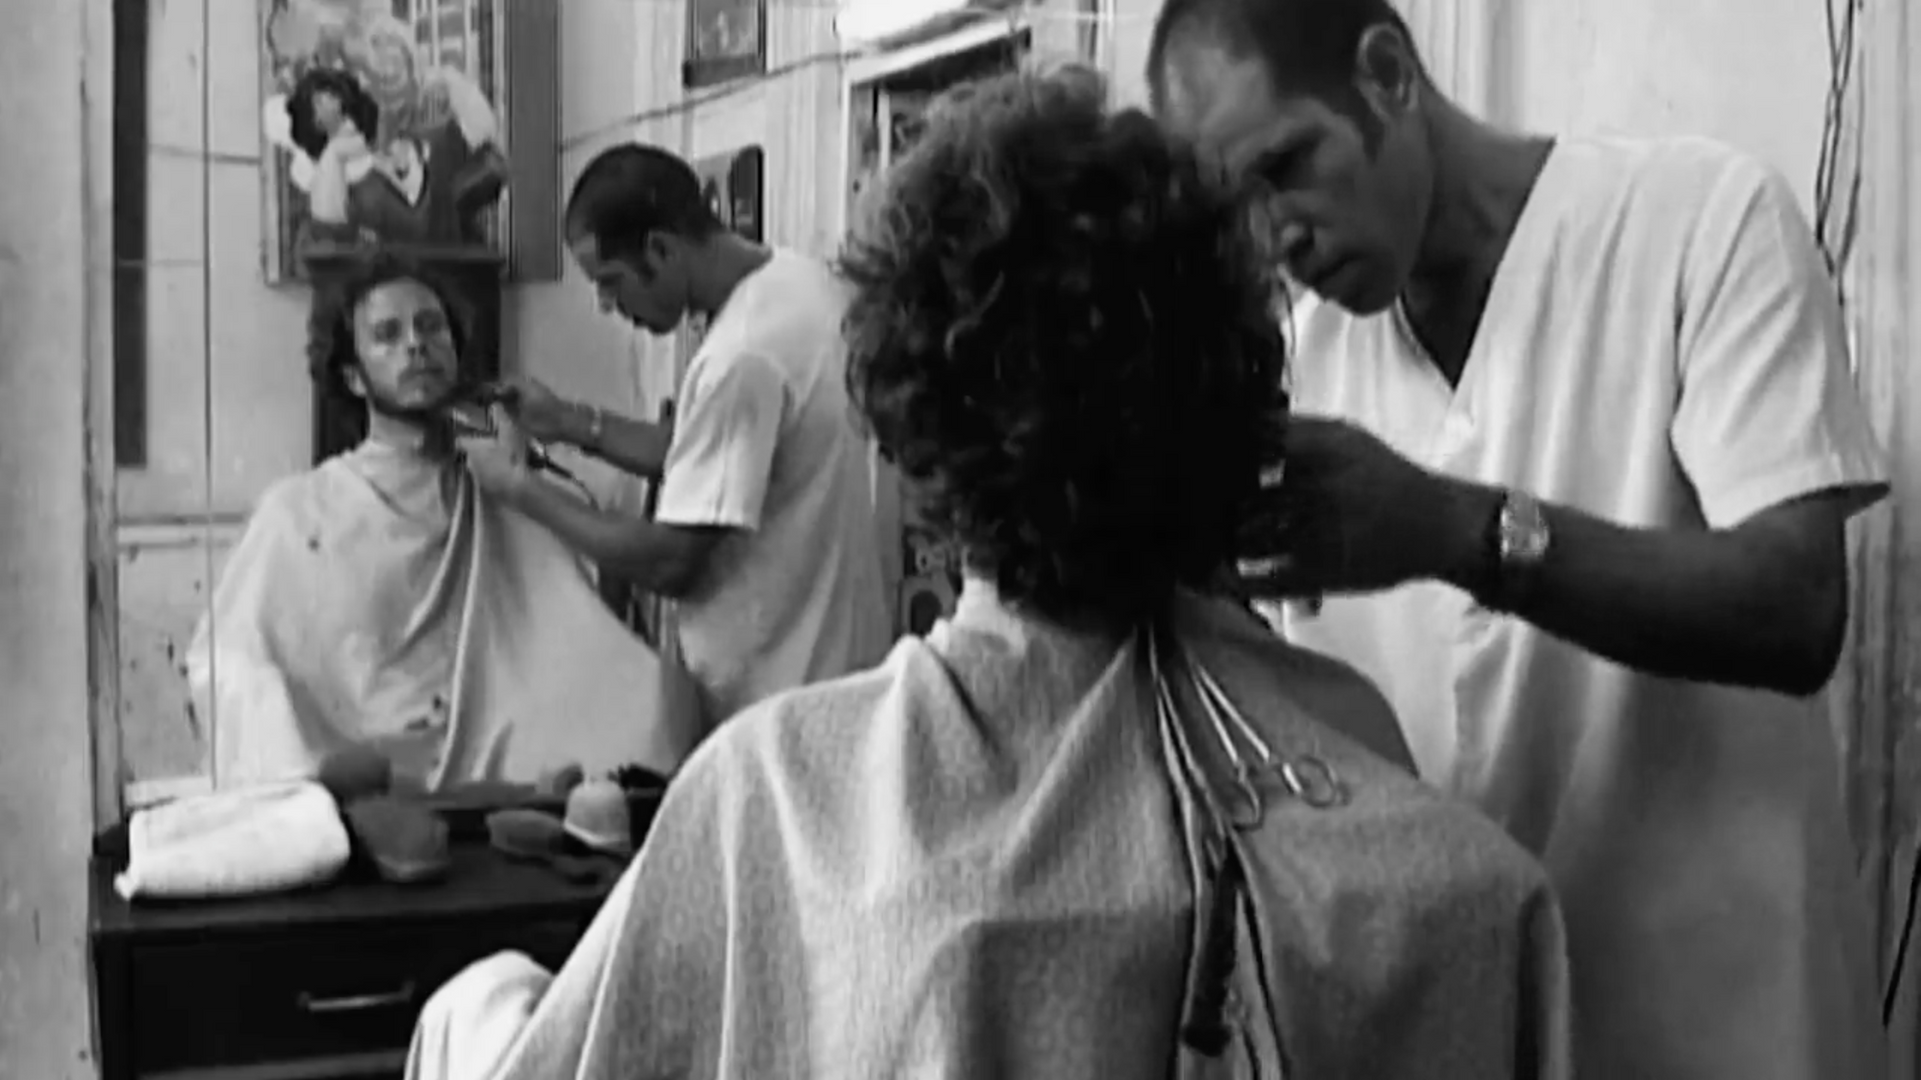 The Barber #10